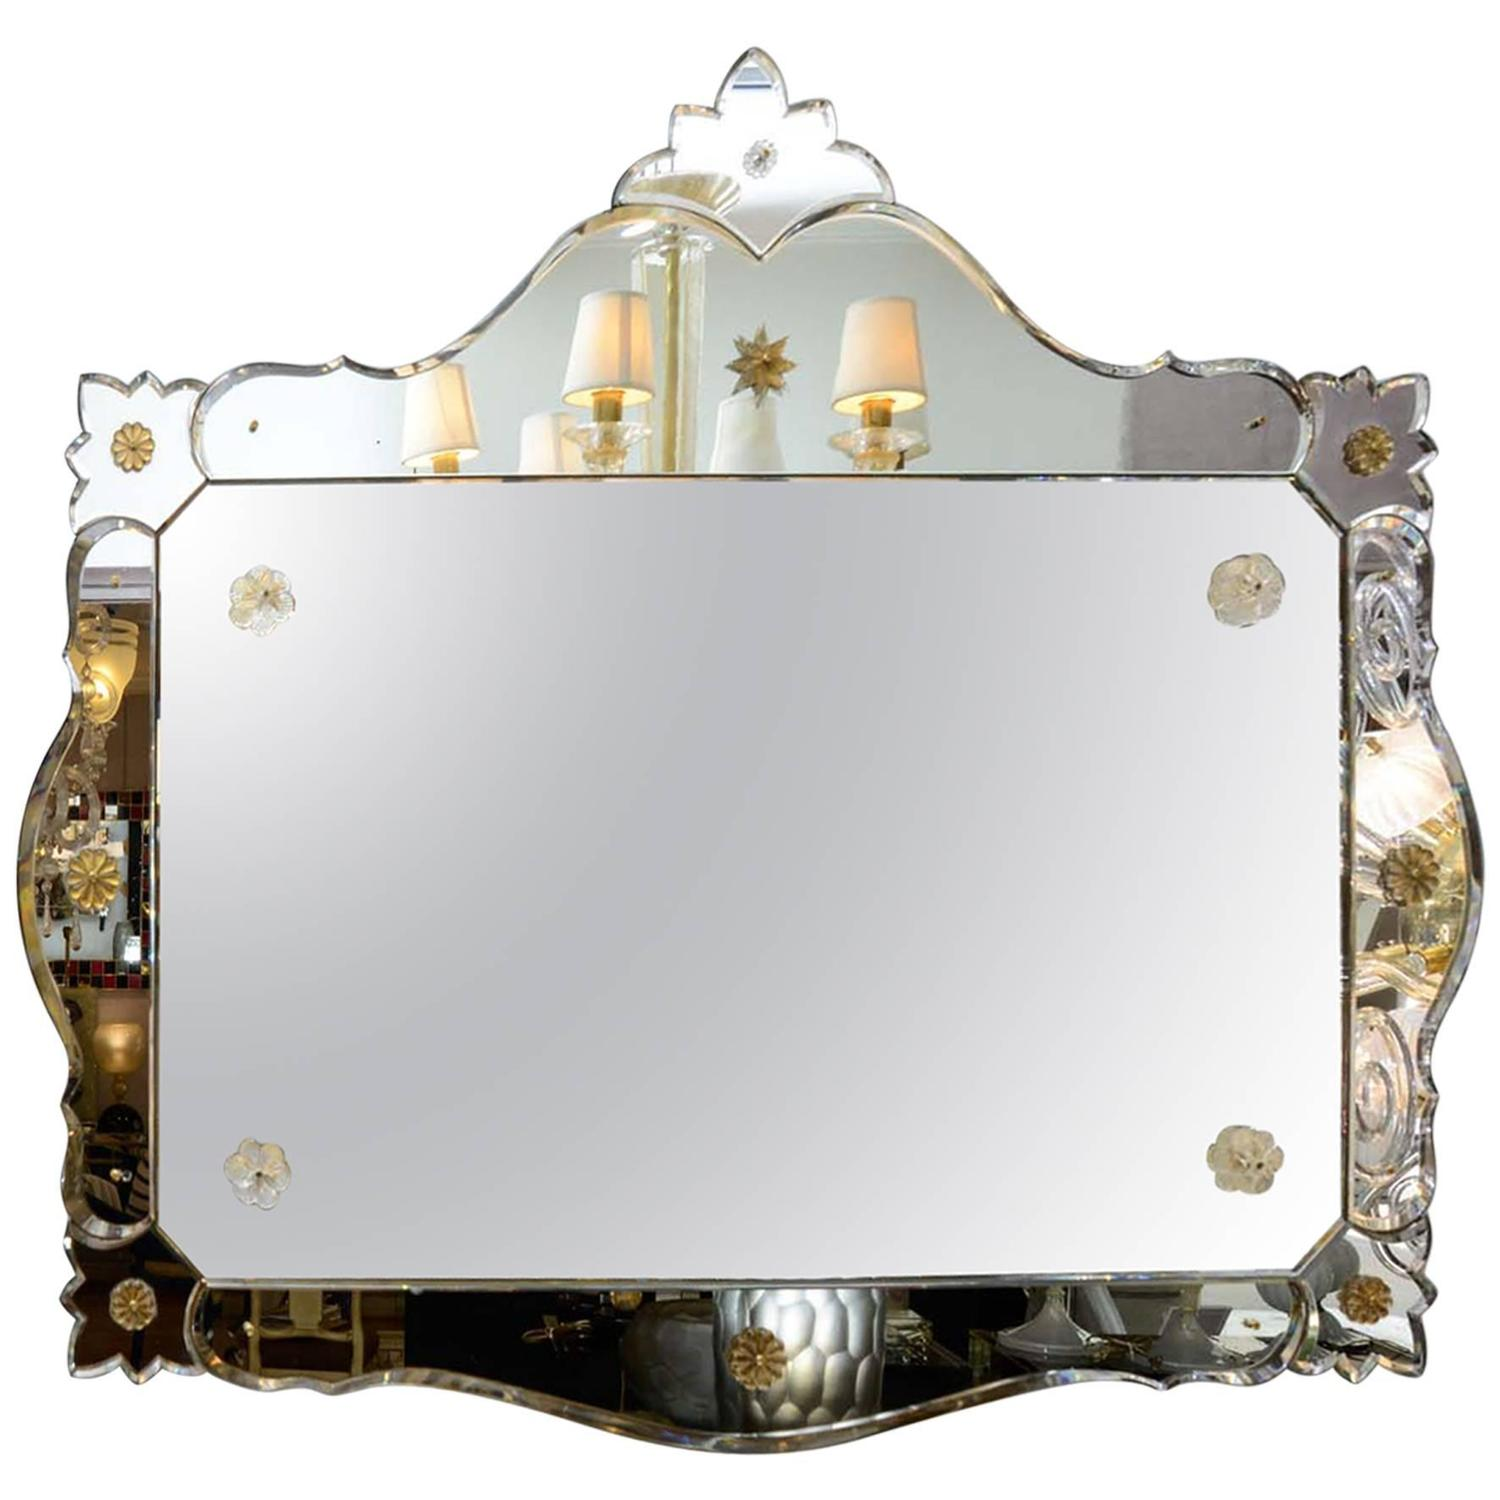 Decorative mirror for sale at 1stdibs for Fancy mirrors for sale